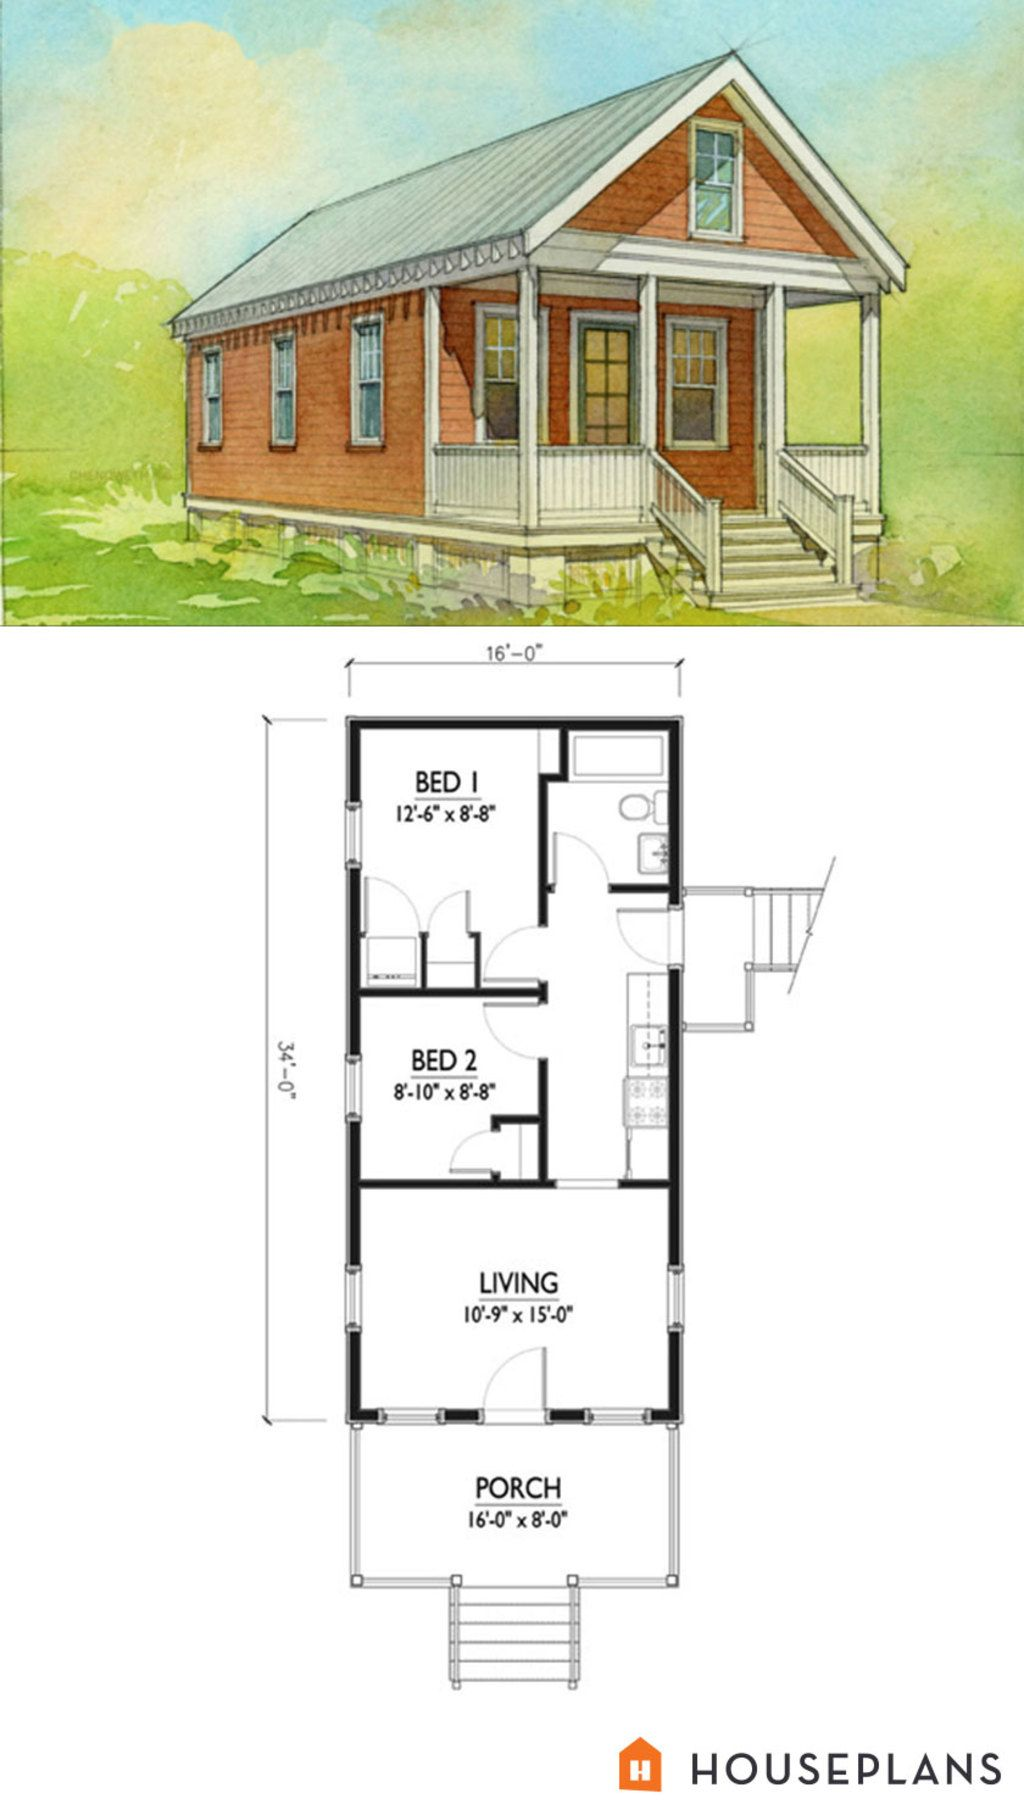 Cottage Style House Plan 2 Beds 1 Baths 544 Sq Ft Plan 514 5 Cottage House Plans Cottage Floor Plans Tiny House Floor Plans